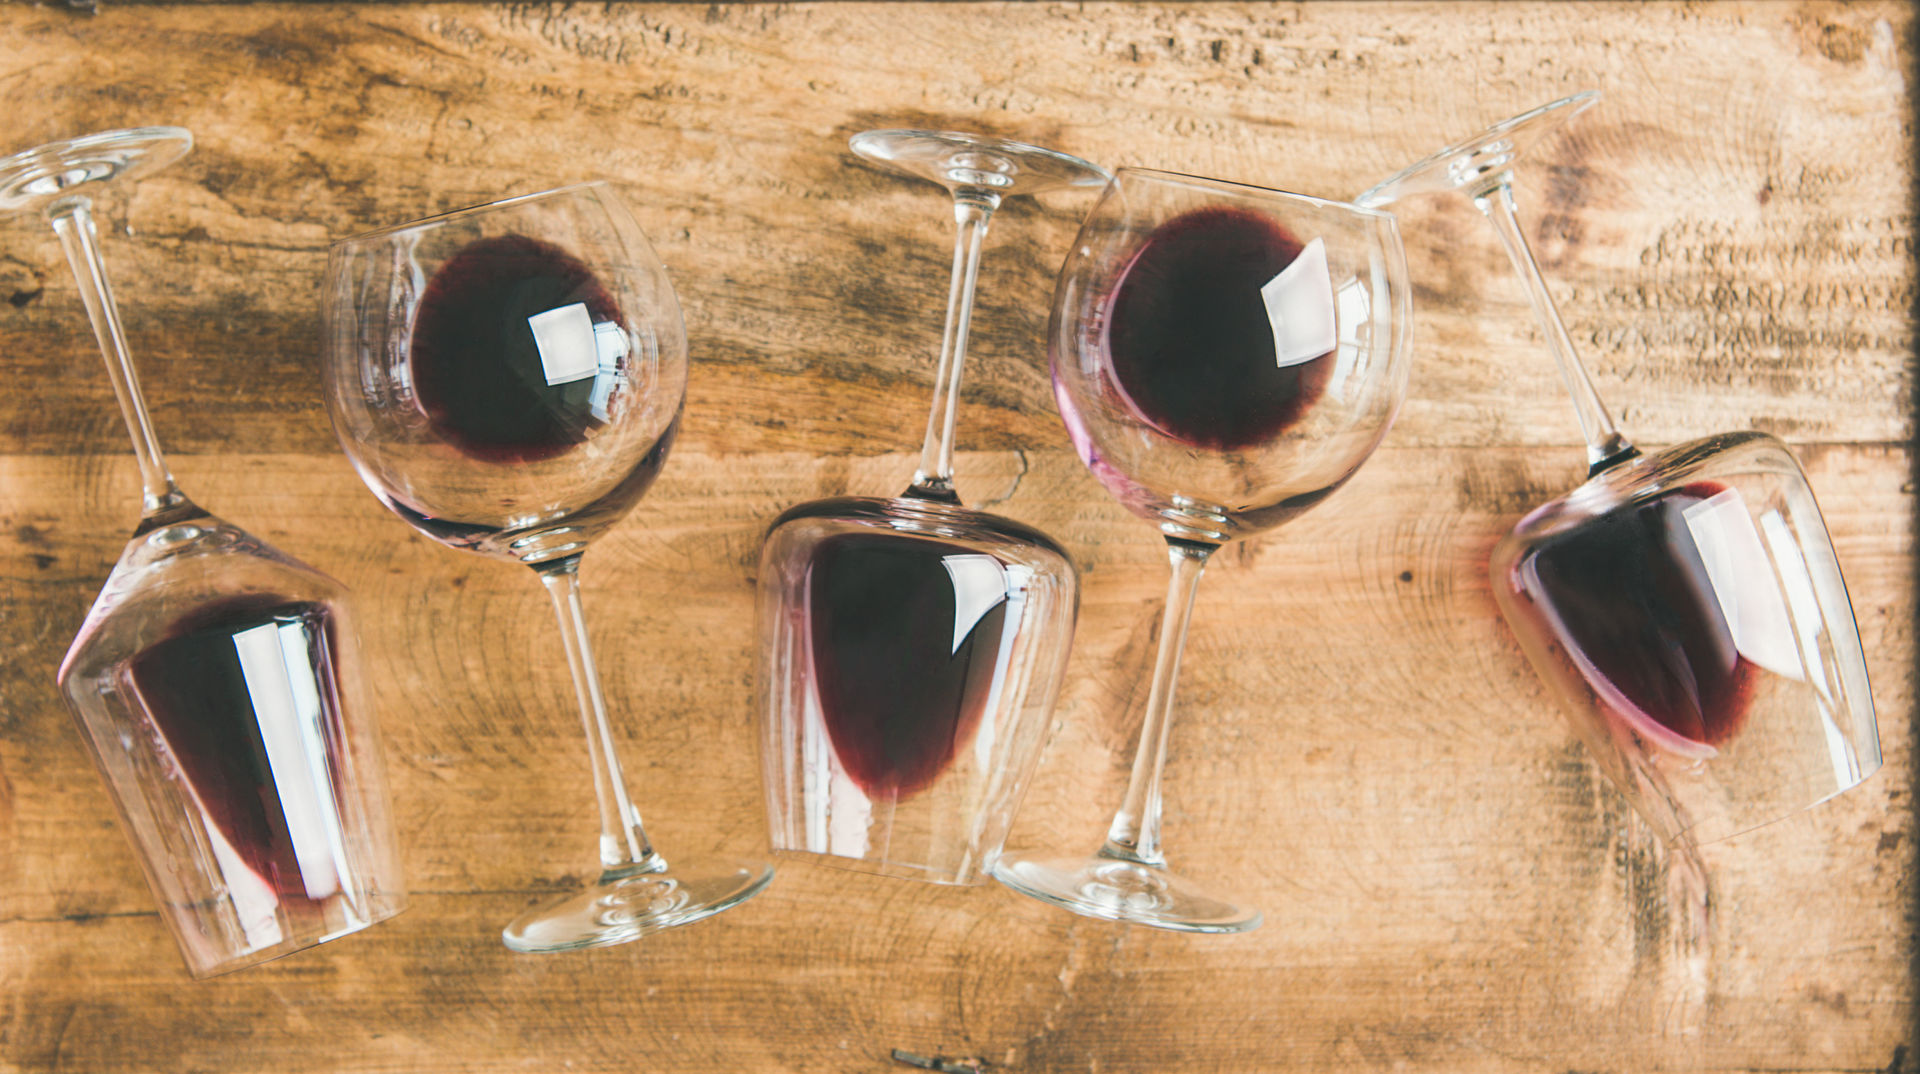 A picture shows glasses of red wine lying on a wooden plate.